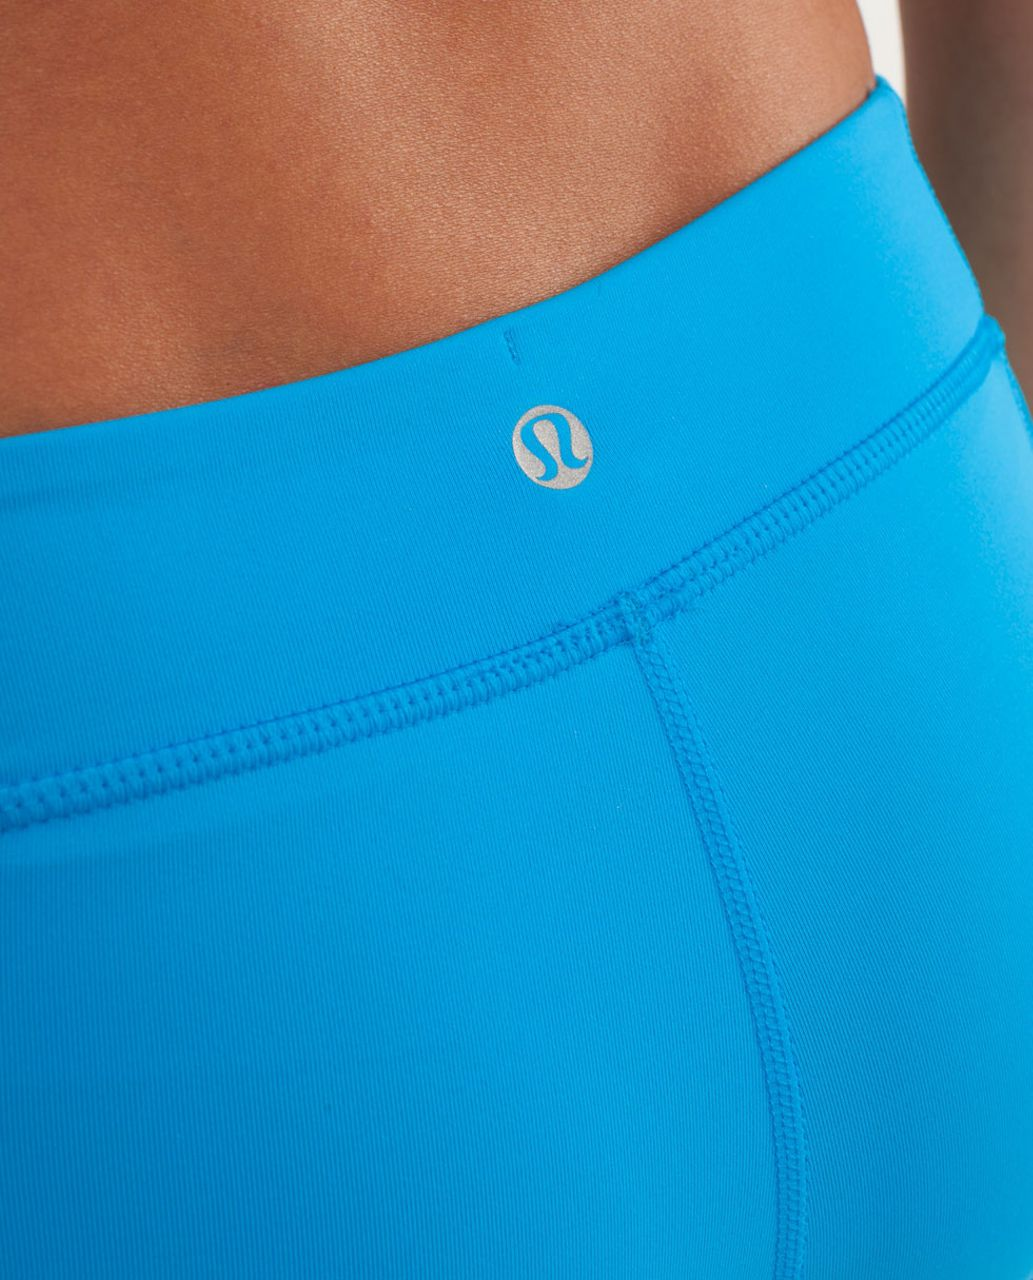 Lululemon Heat It Up Short - Beach Blanket Blue / Aquamarine